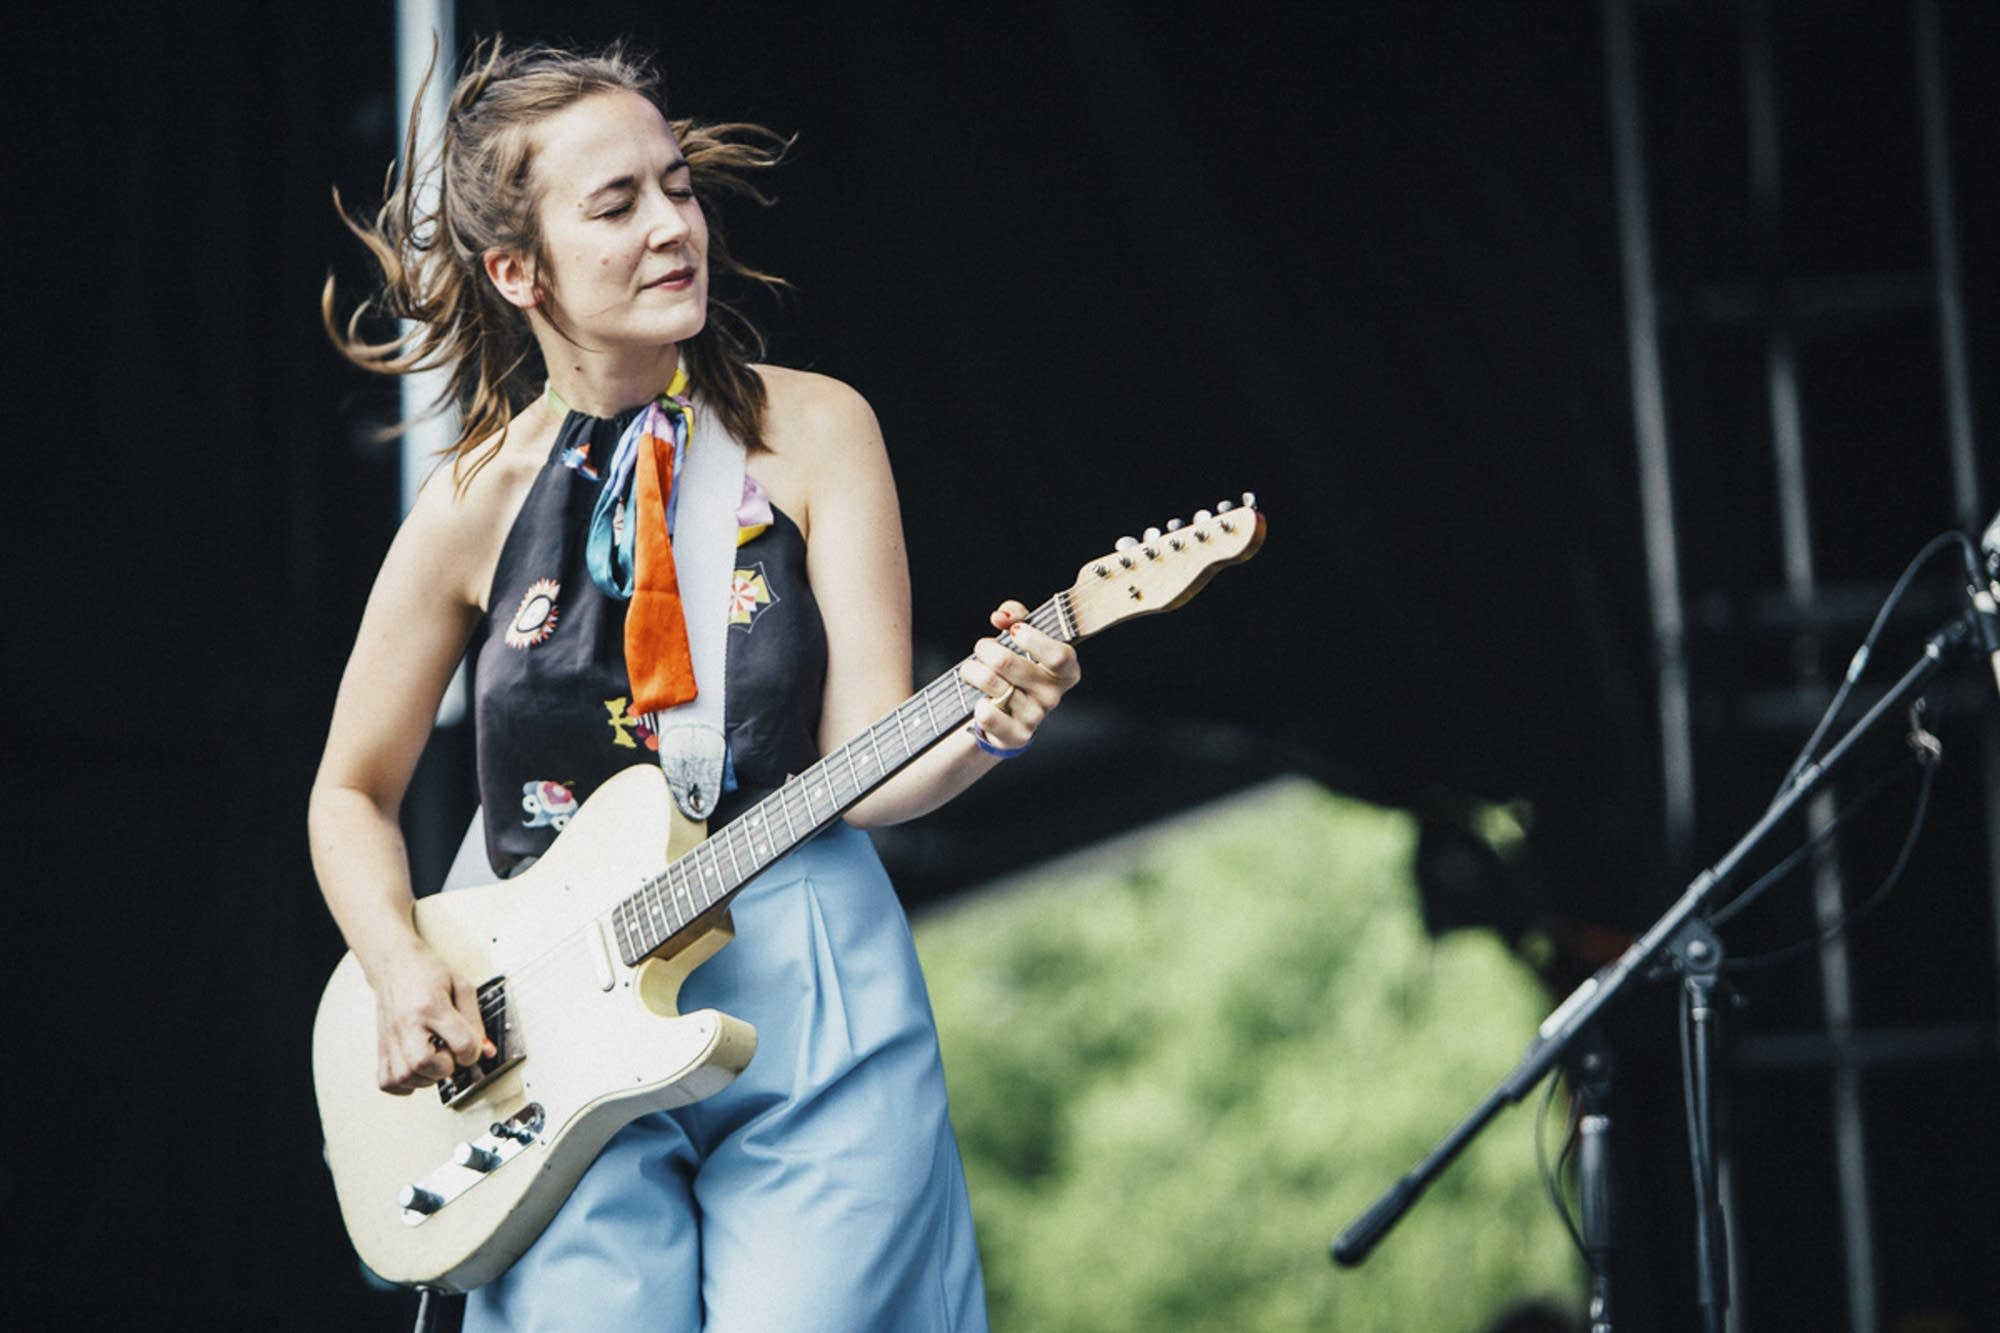 Margaret Glaspy whips her hair back and forth.